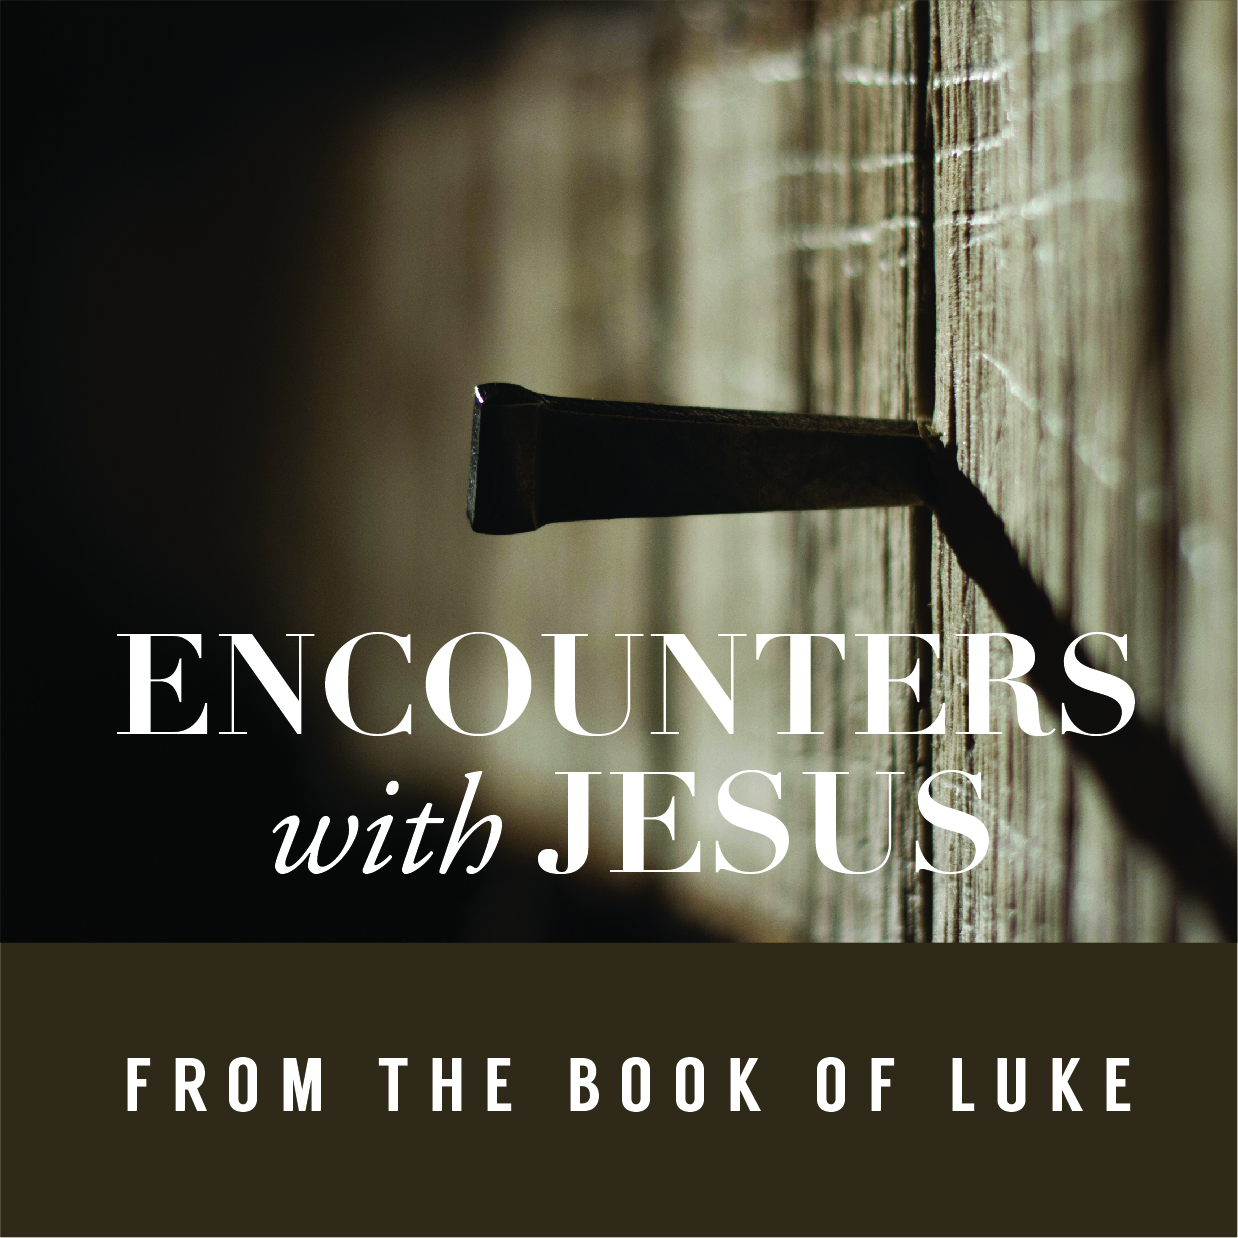 encounters with jesus.jpg